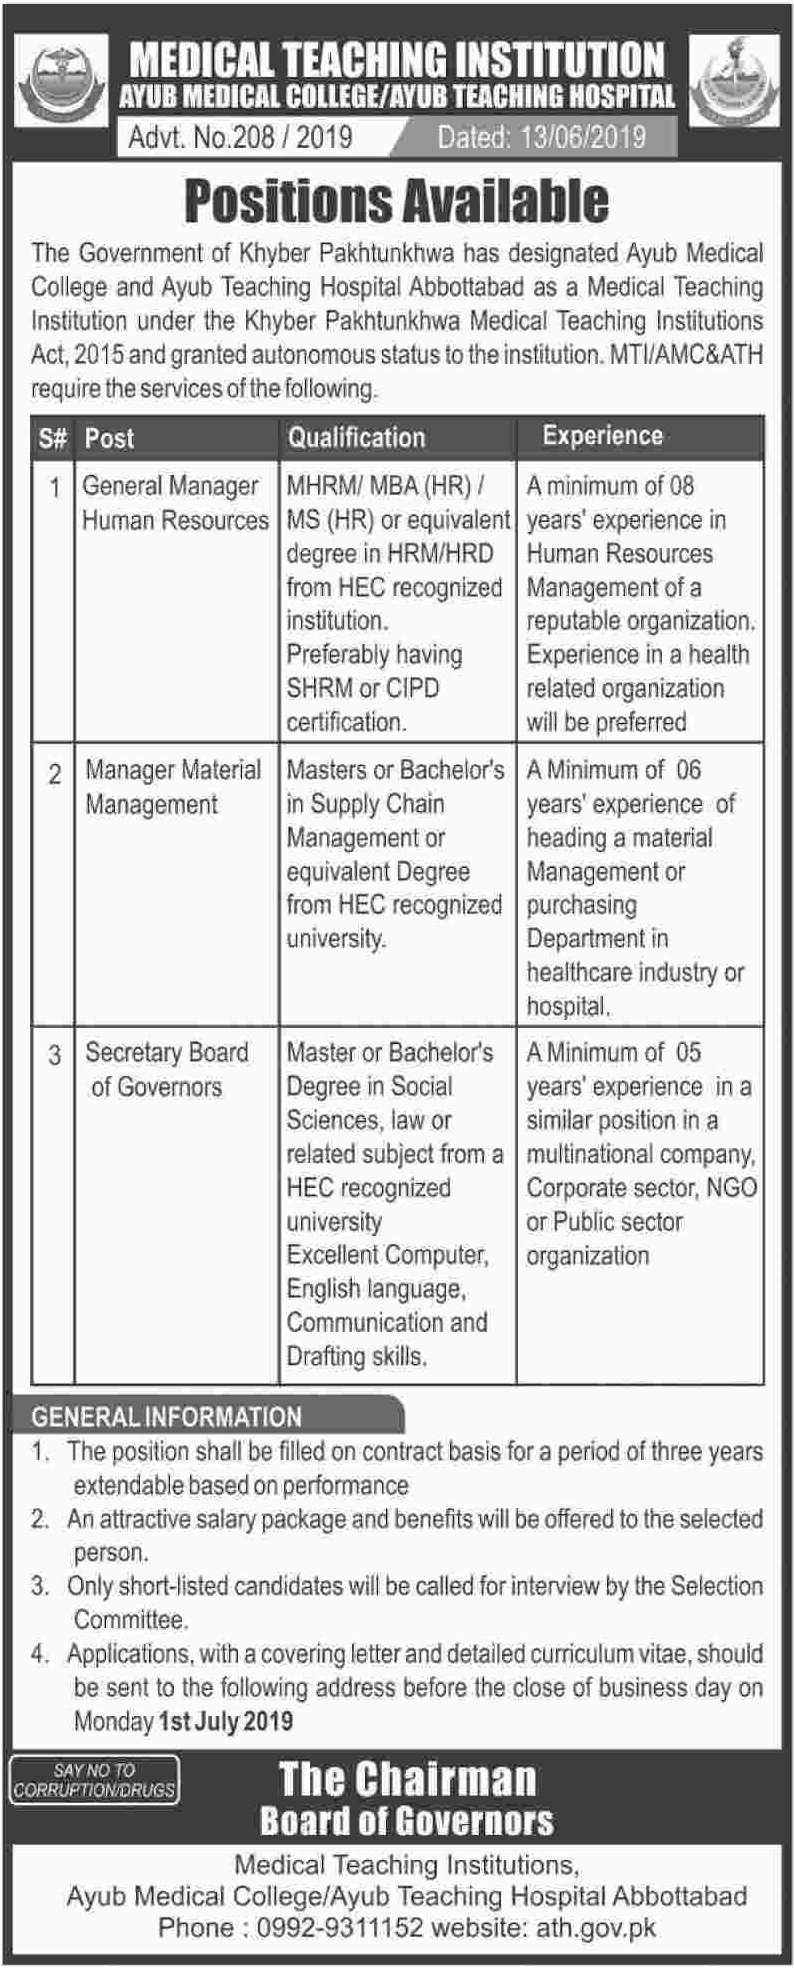 Ayub Medical College & Ayub Teaching Hospital Abbottabad Jobs 2019 Government of Khyber Pakhtunkhwa